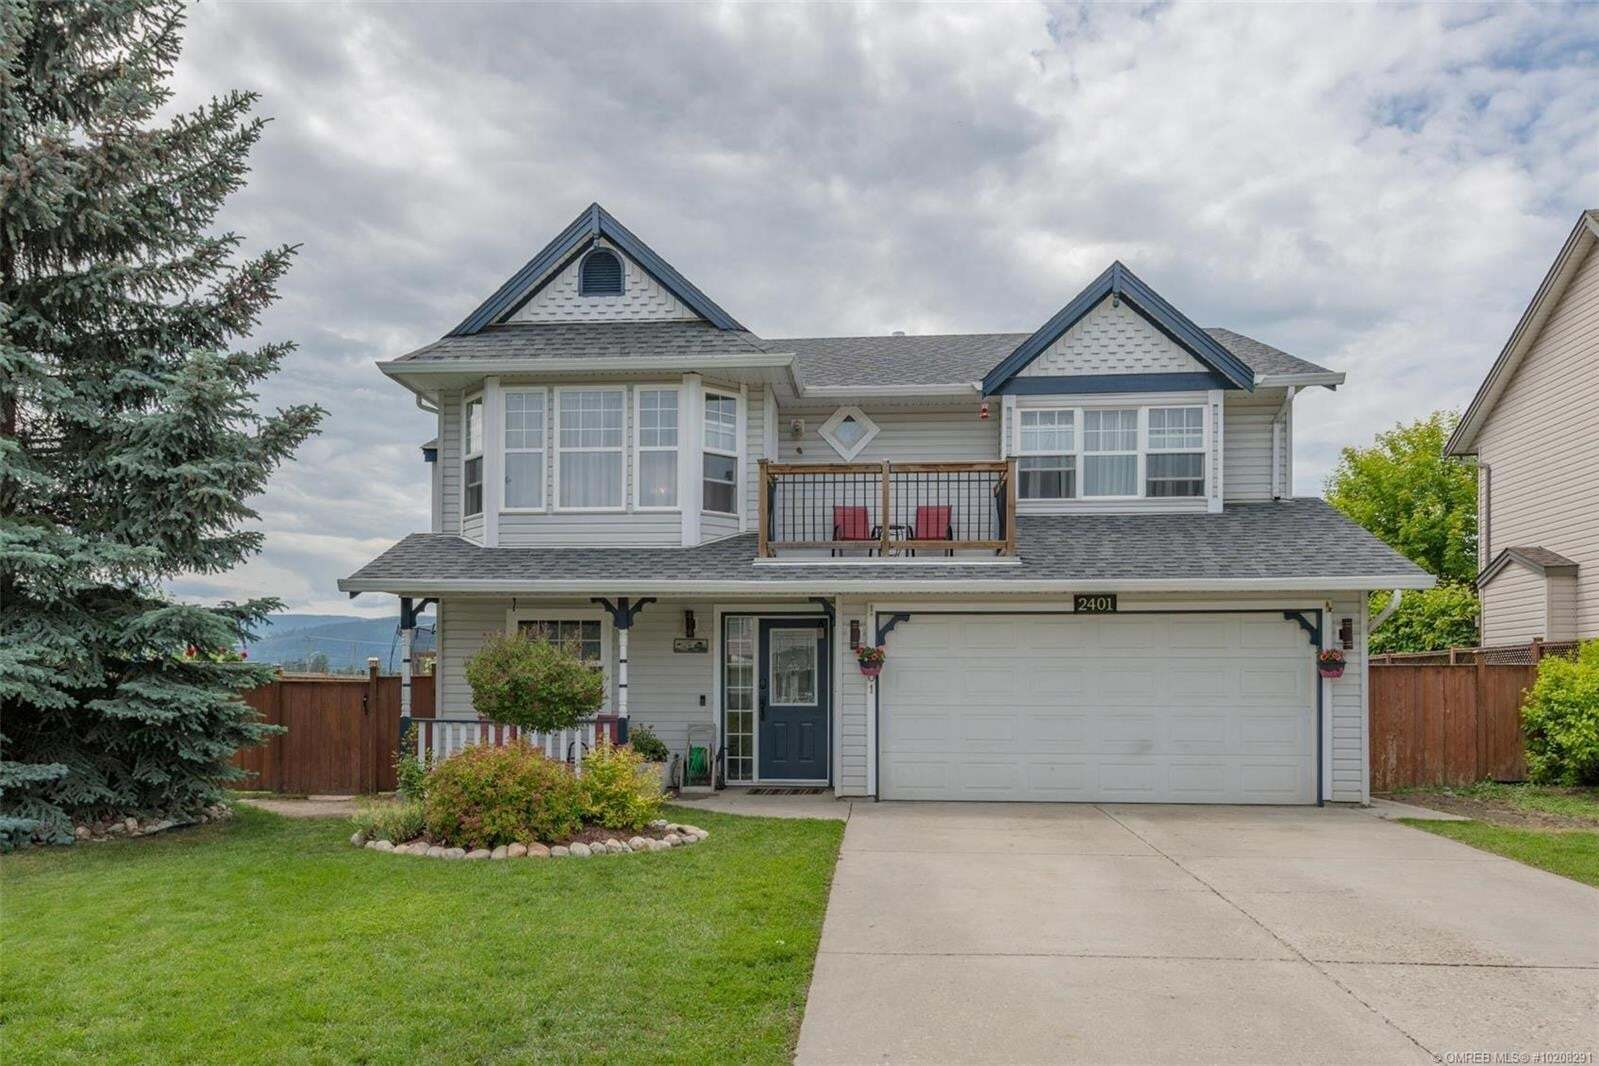 House for sale at 2401 Pheasant Ridge Dr Armstrong British Columbia - MLS: 10208291